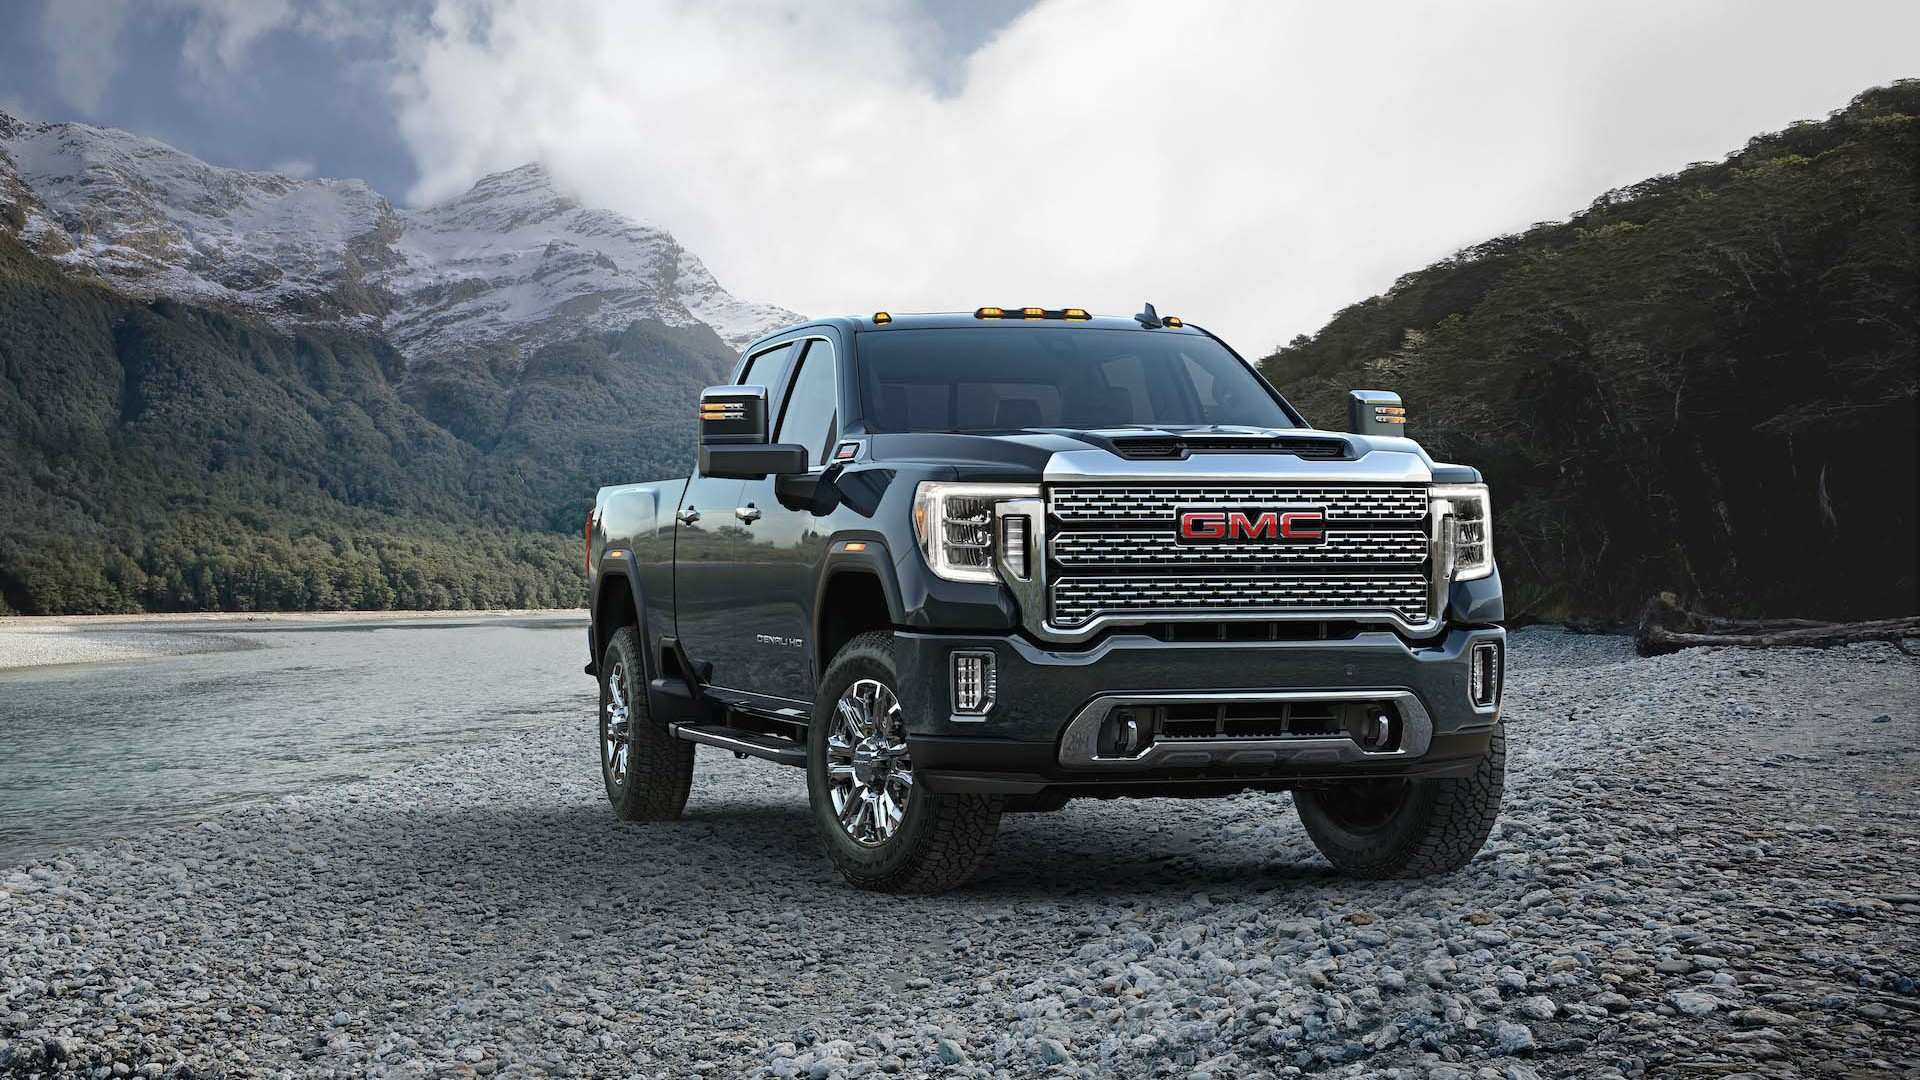 45 Concept of 2020 Gmc 2500 Release Date Picture for 2020 Gmc 2500 Release Date